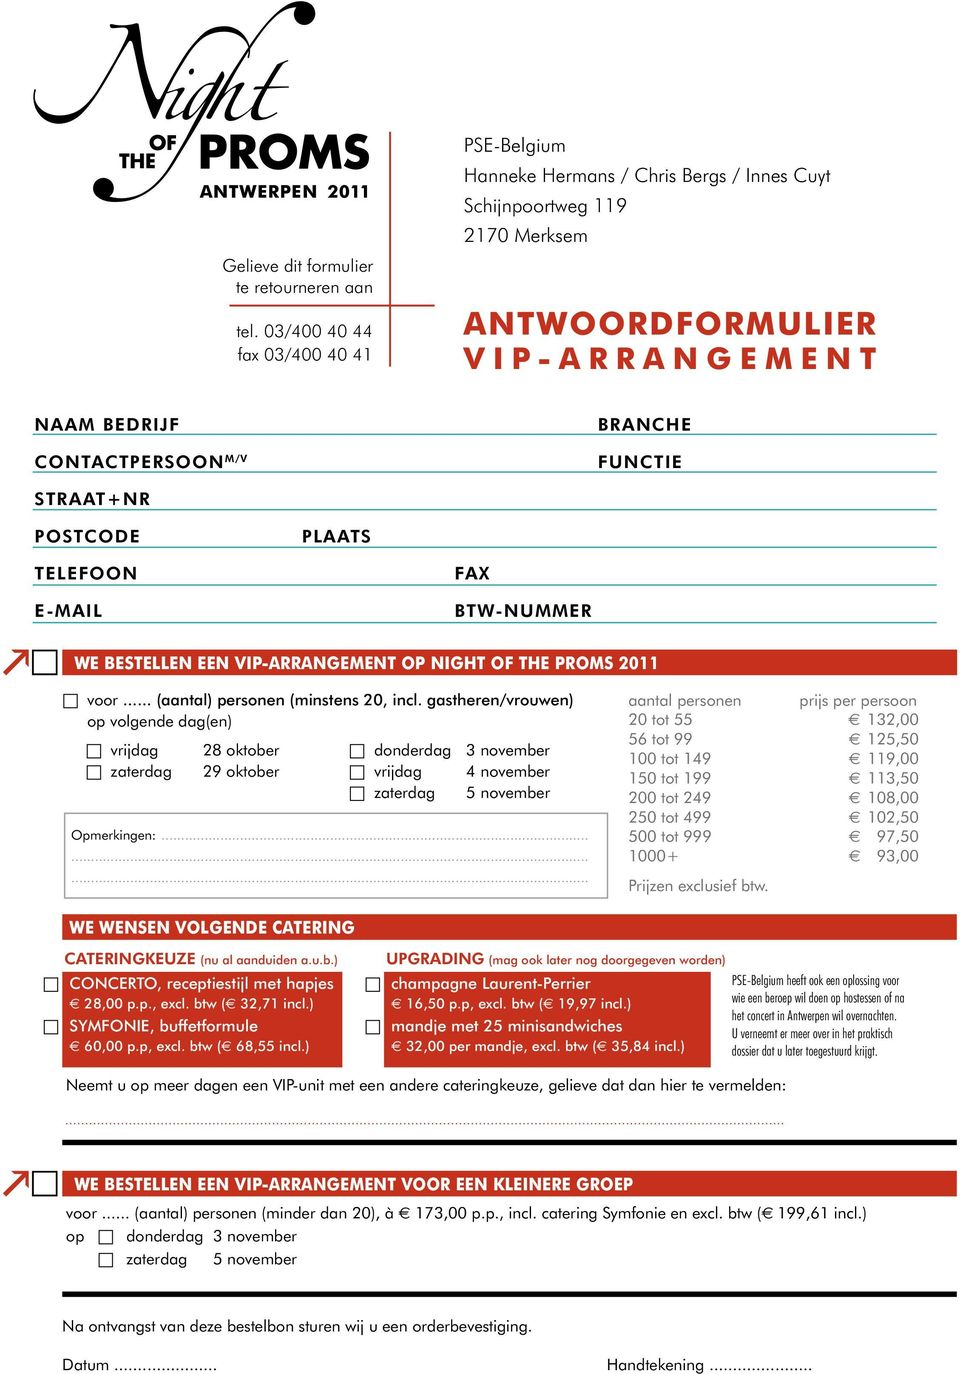 Postcode Plaats Telefoo E-mail Fax BTW-NUMMER We bestelle ee VIP-ARRANGEMENT op ight of the proms 2011 voor... (aatal) persoe (mistes 20, icl.